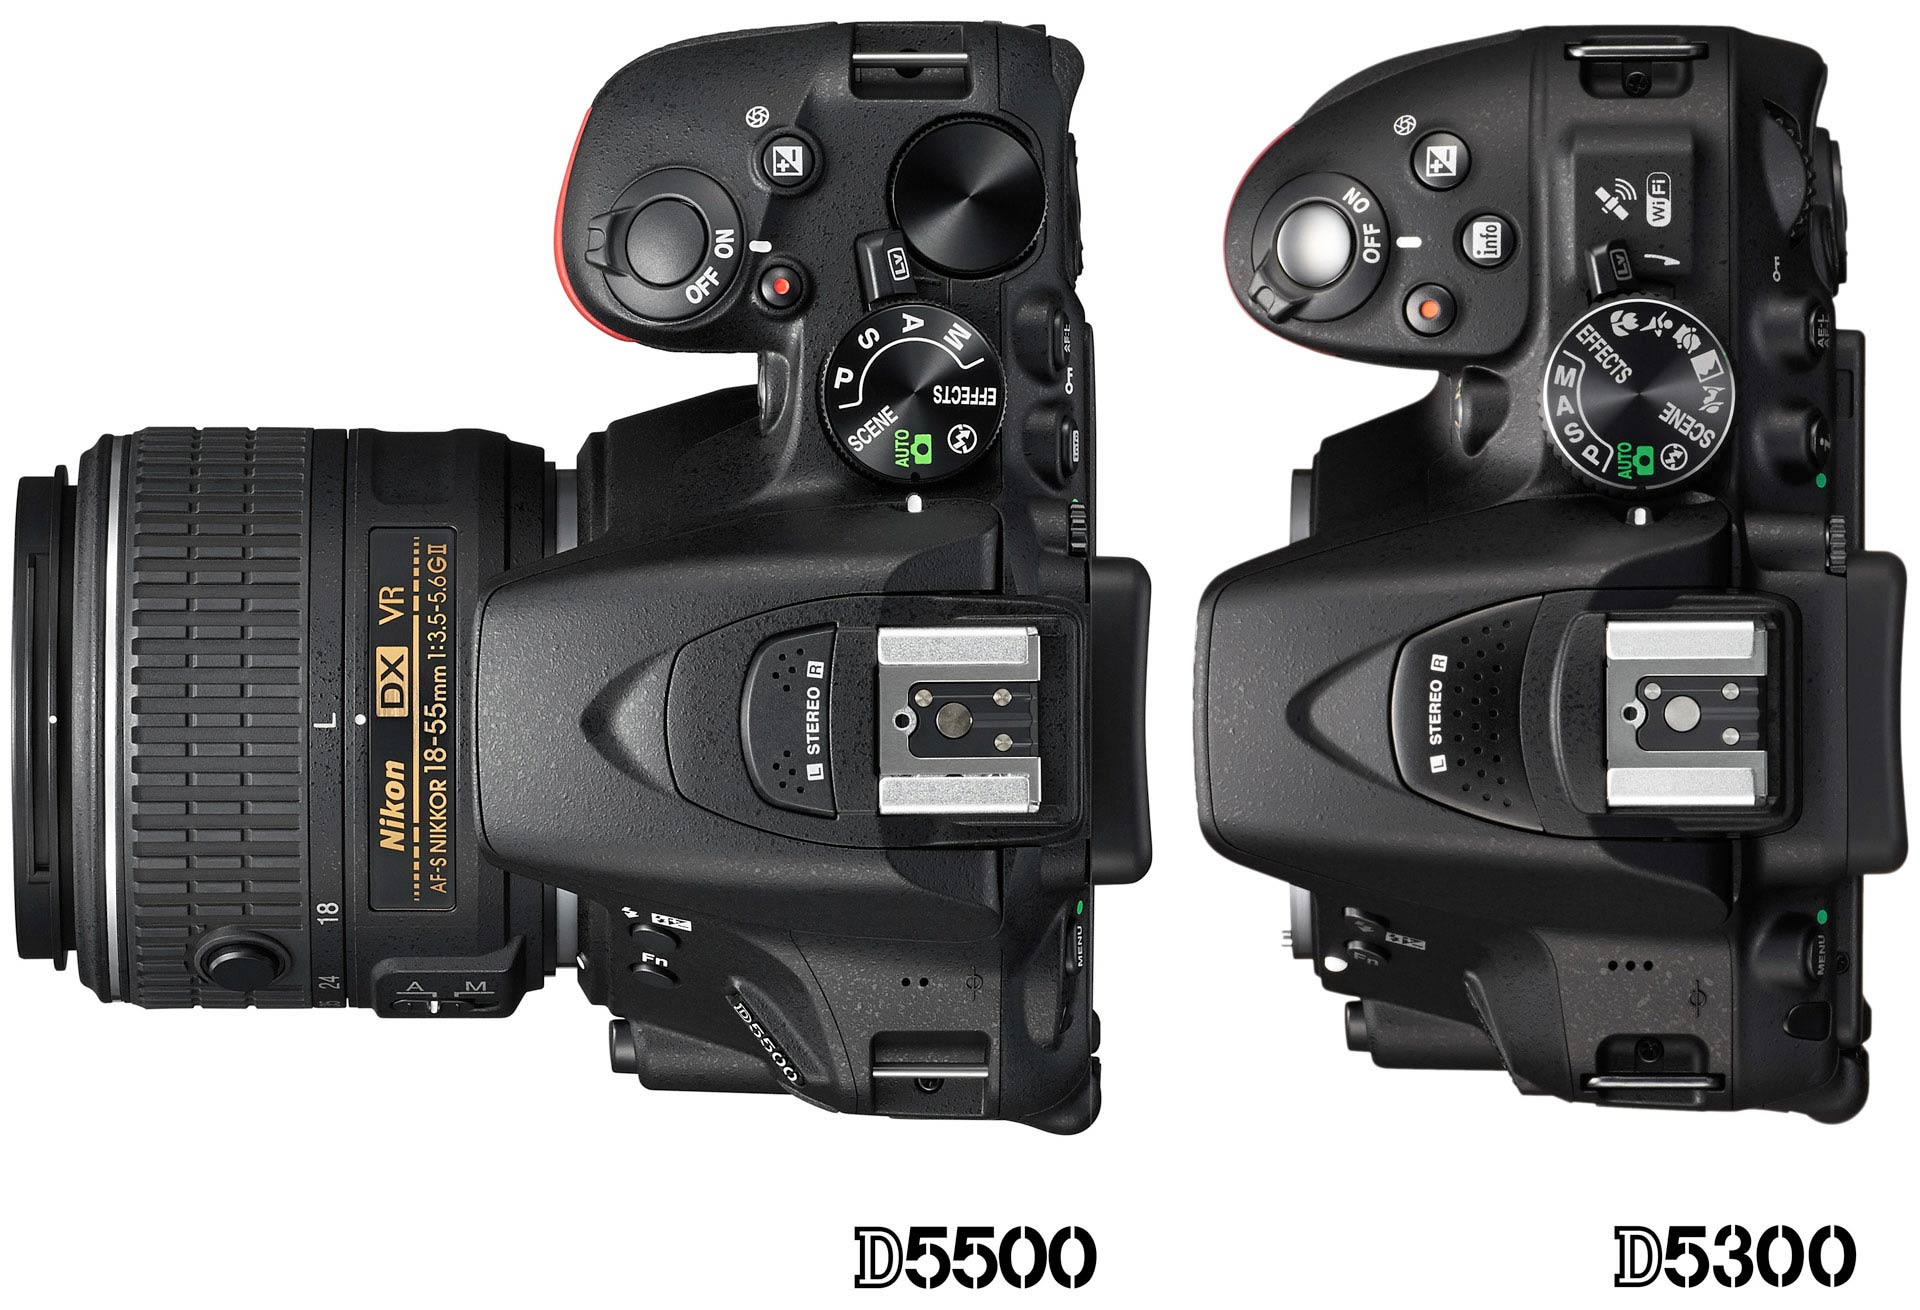 Nikon D5500 vs D7100 : Which Should You Buy? – Light And Matter